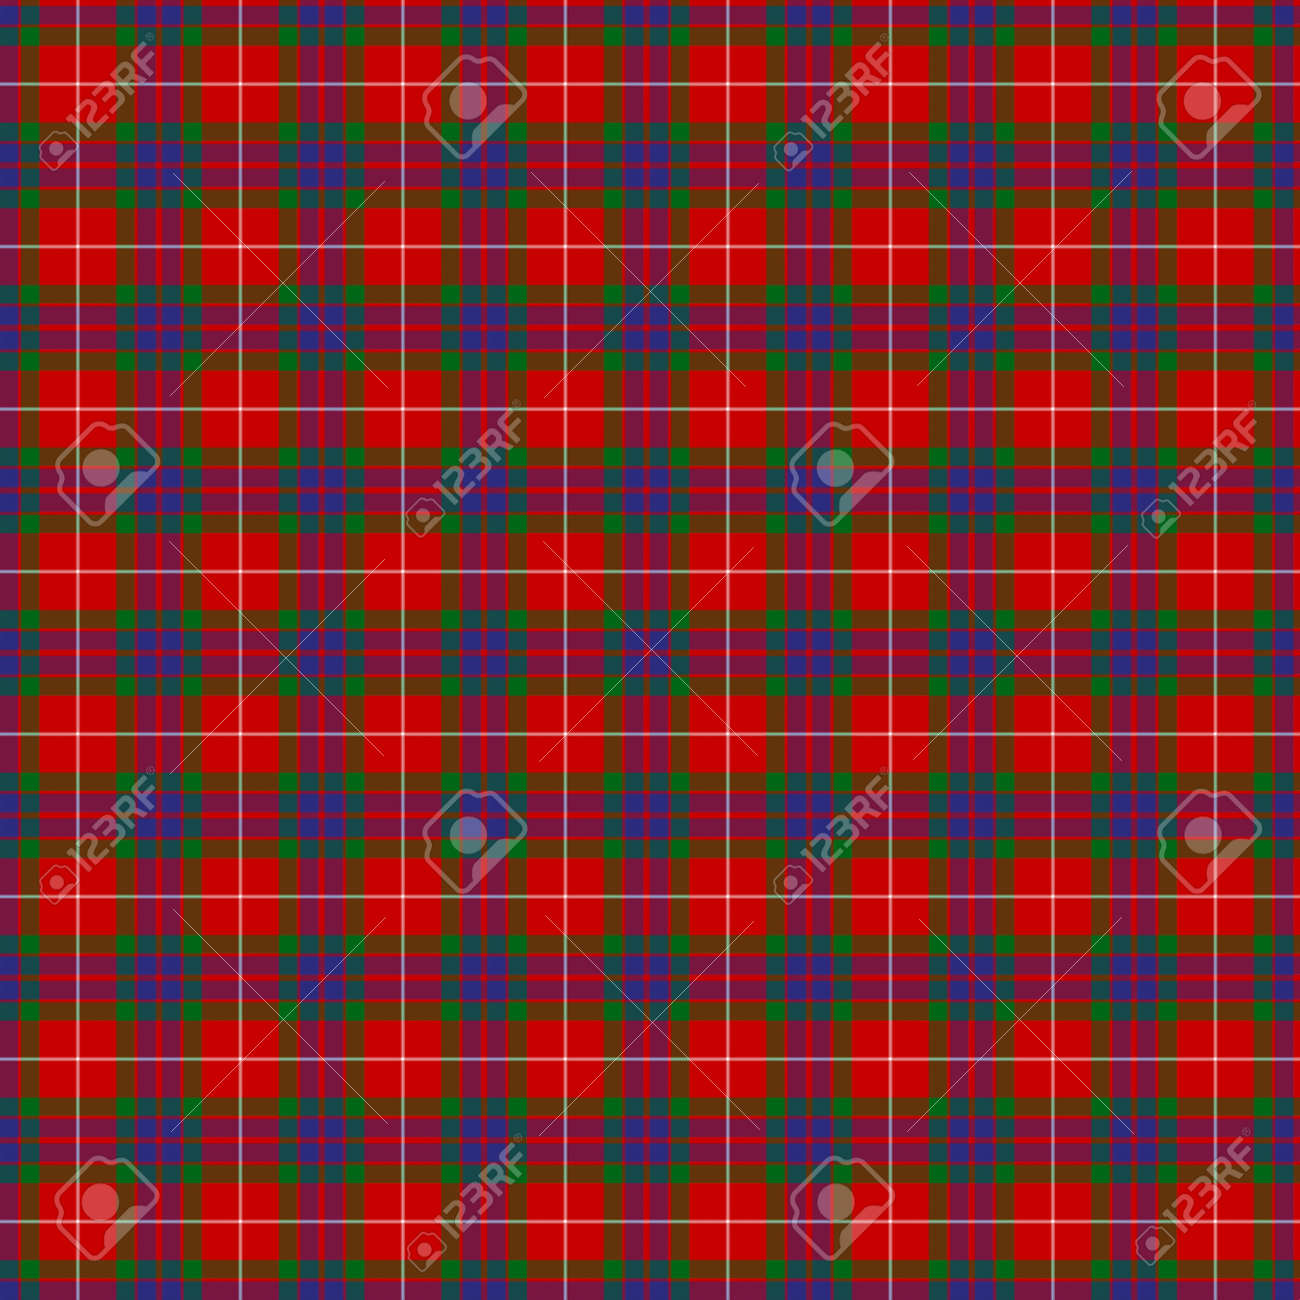 A seamless patterned tile of the clan Fraser tartan